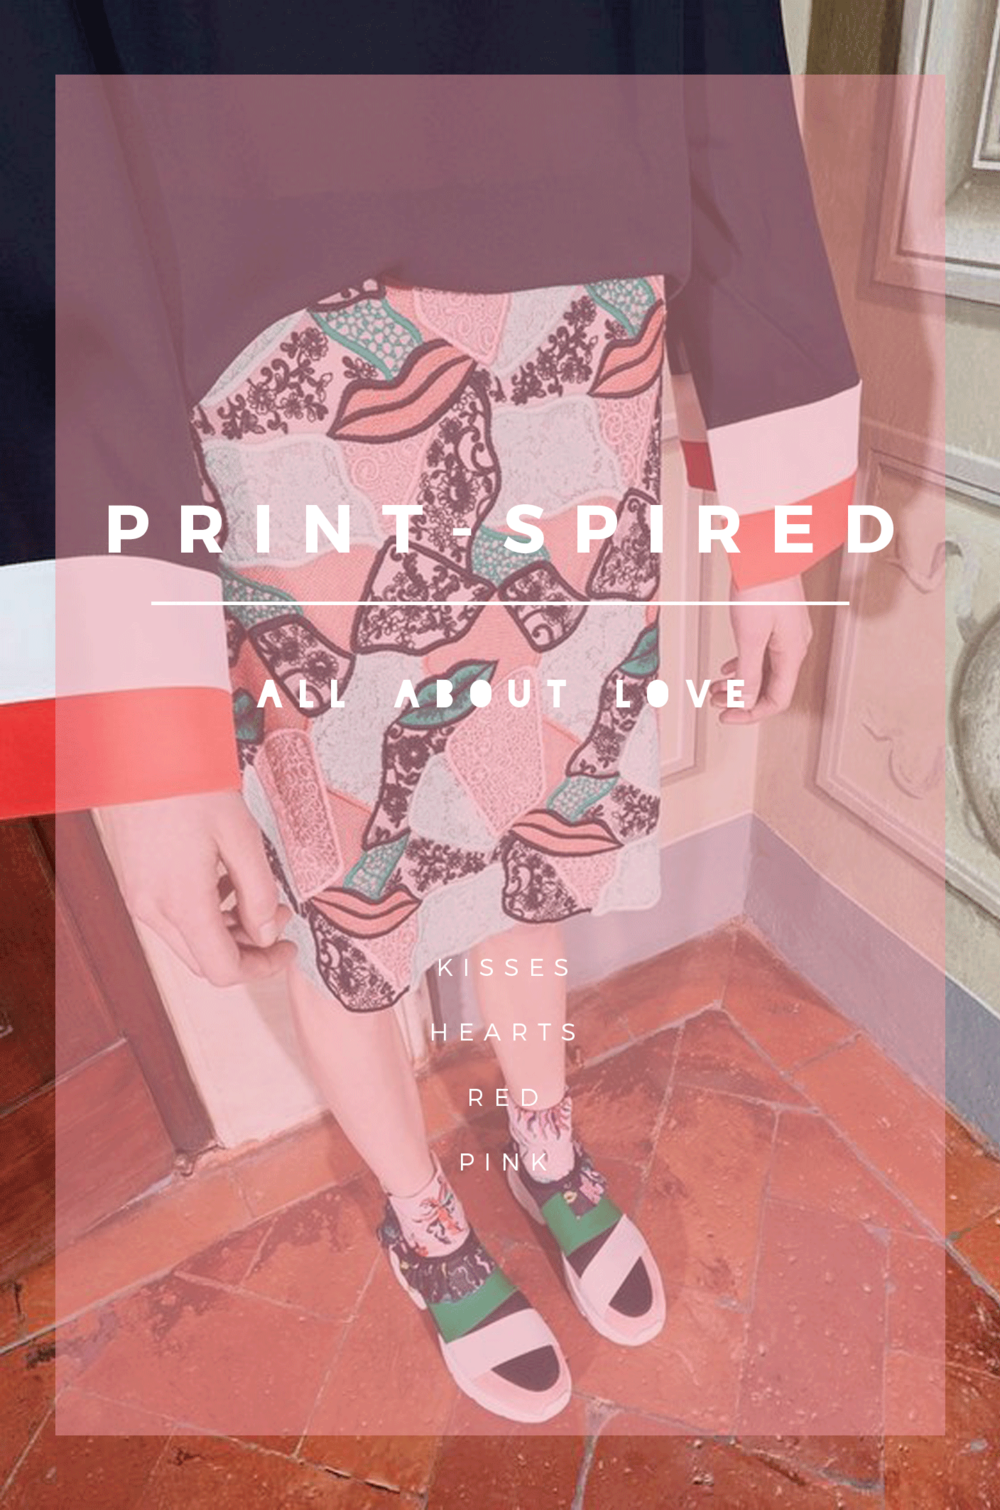 print-spired | @themissprints